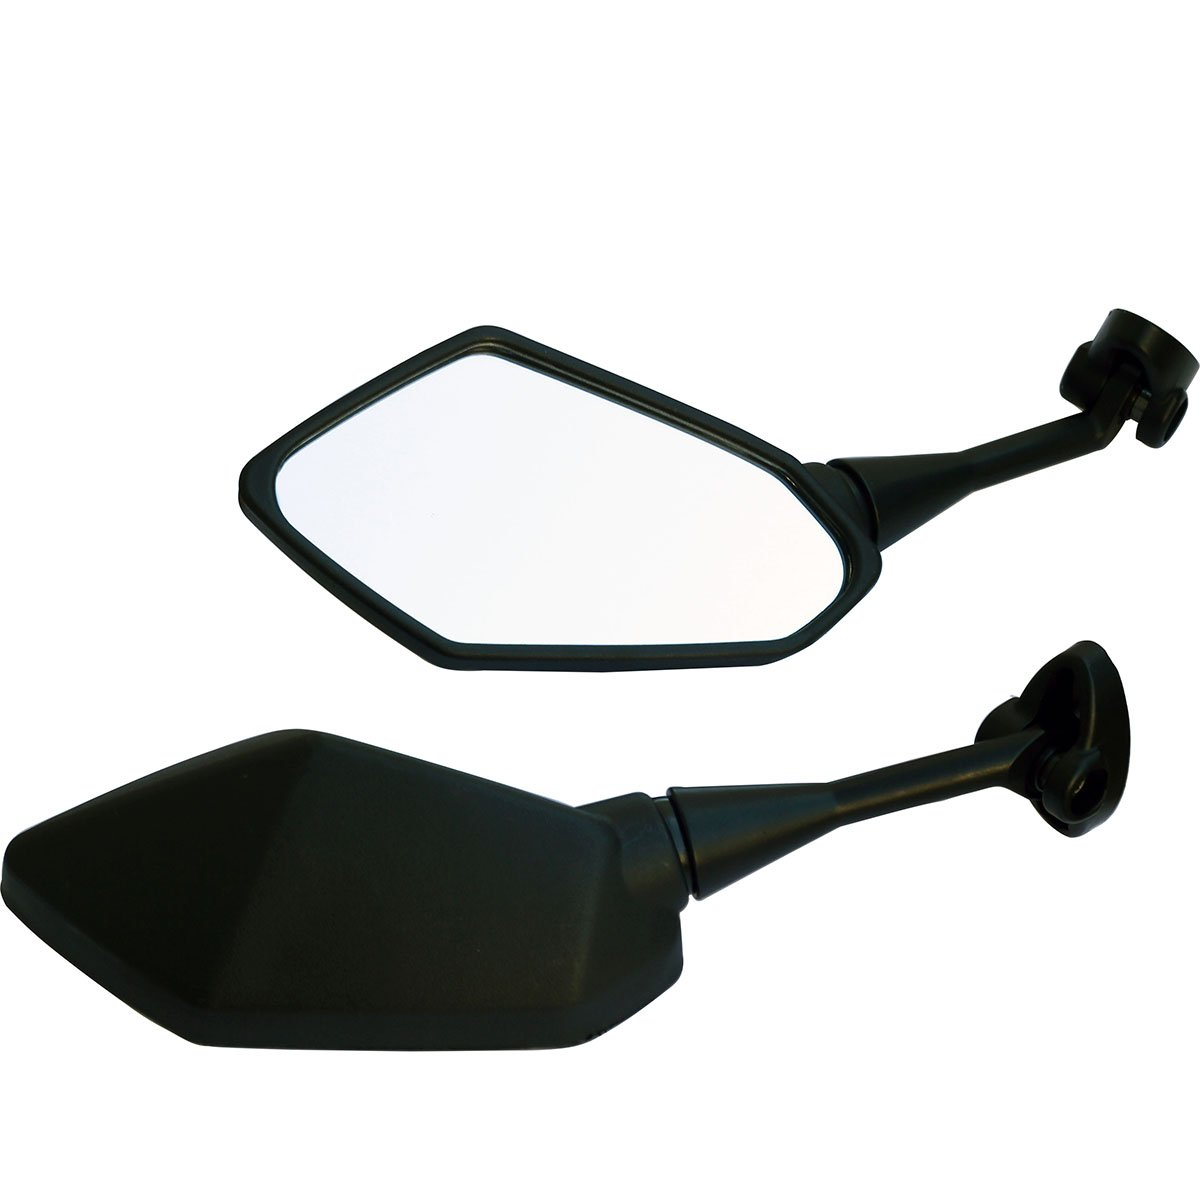 Black Motorcycle Rear View Mirrors For Sport Bike 2009 Yamaha FZ6R